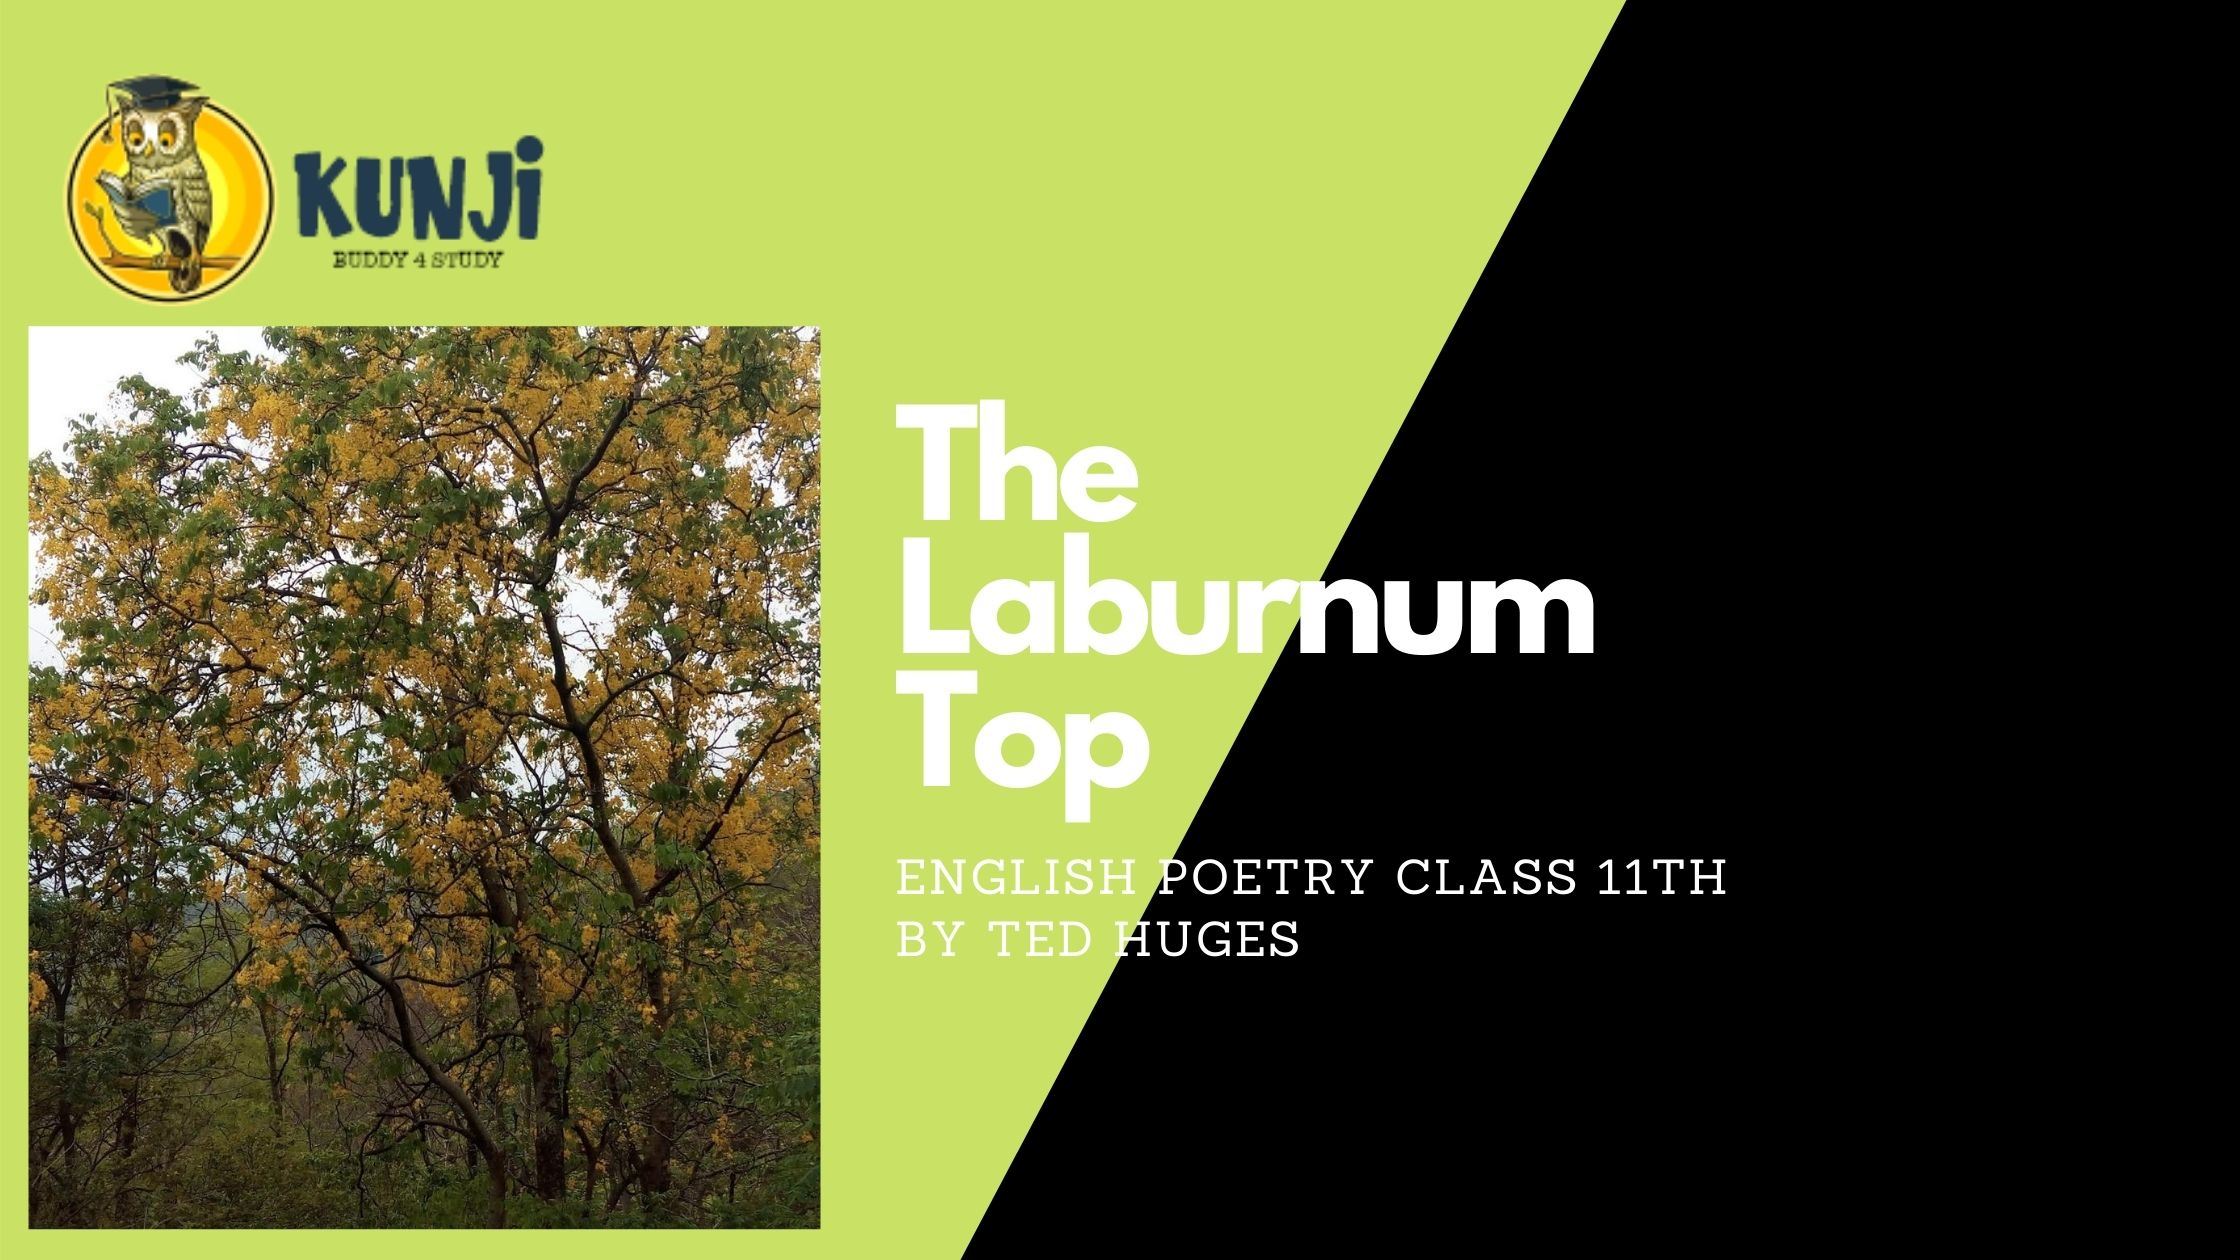 NCERT Solutions for 11th Class English poetry The laburnum Top